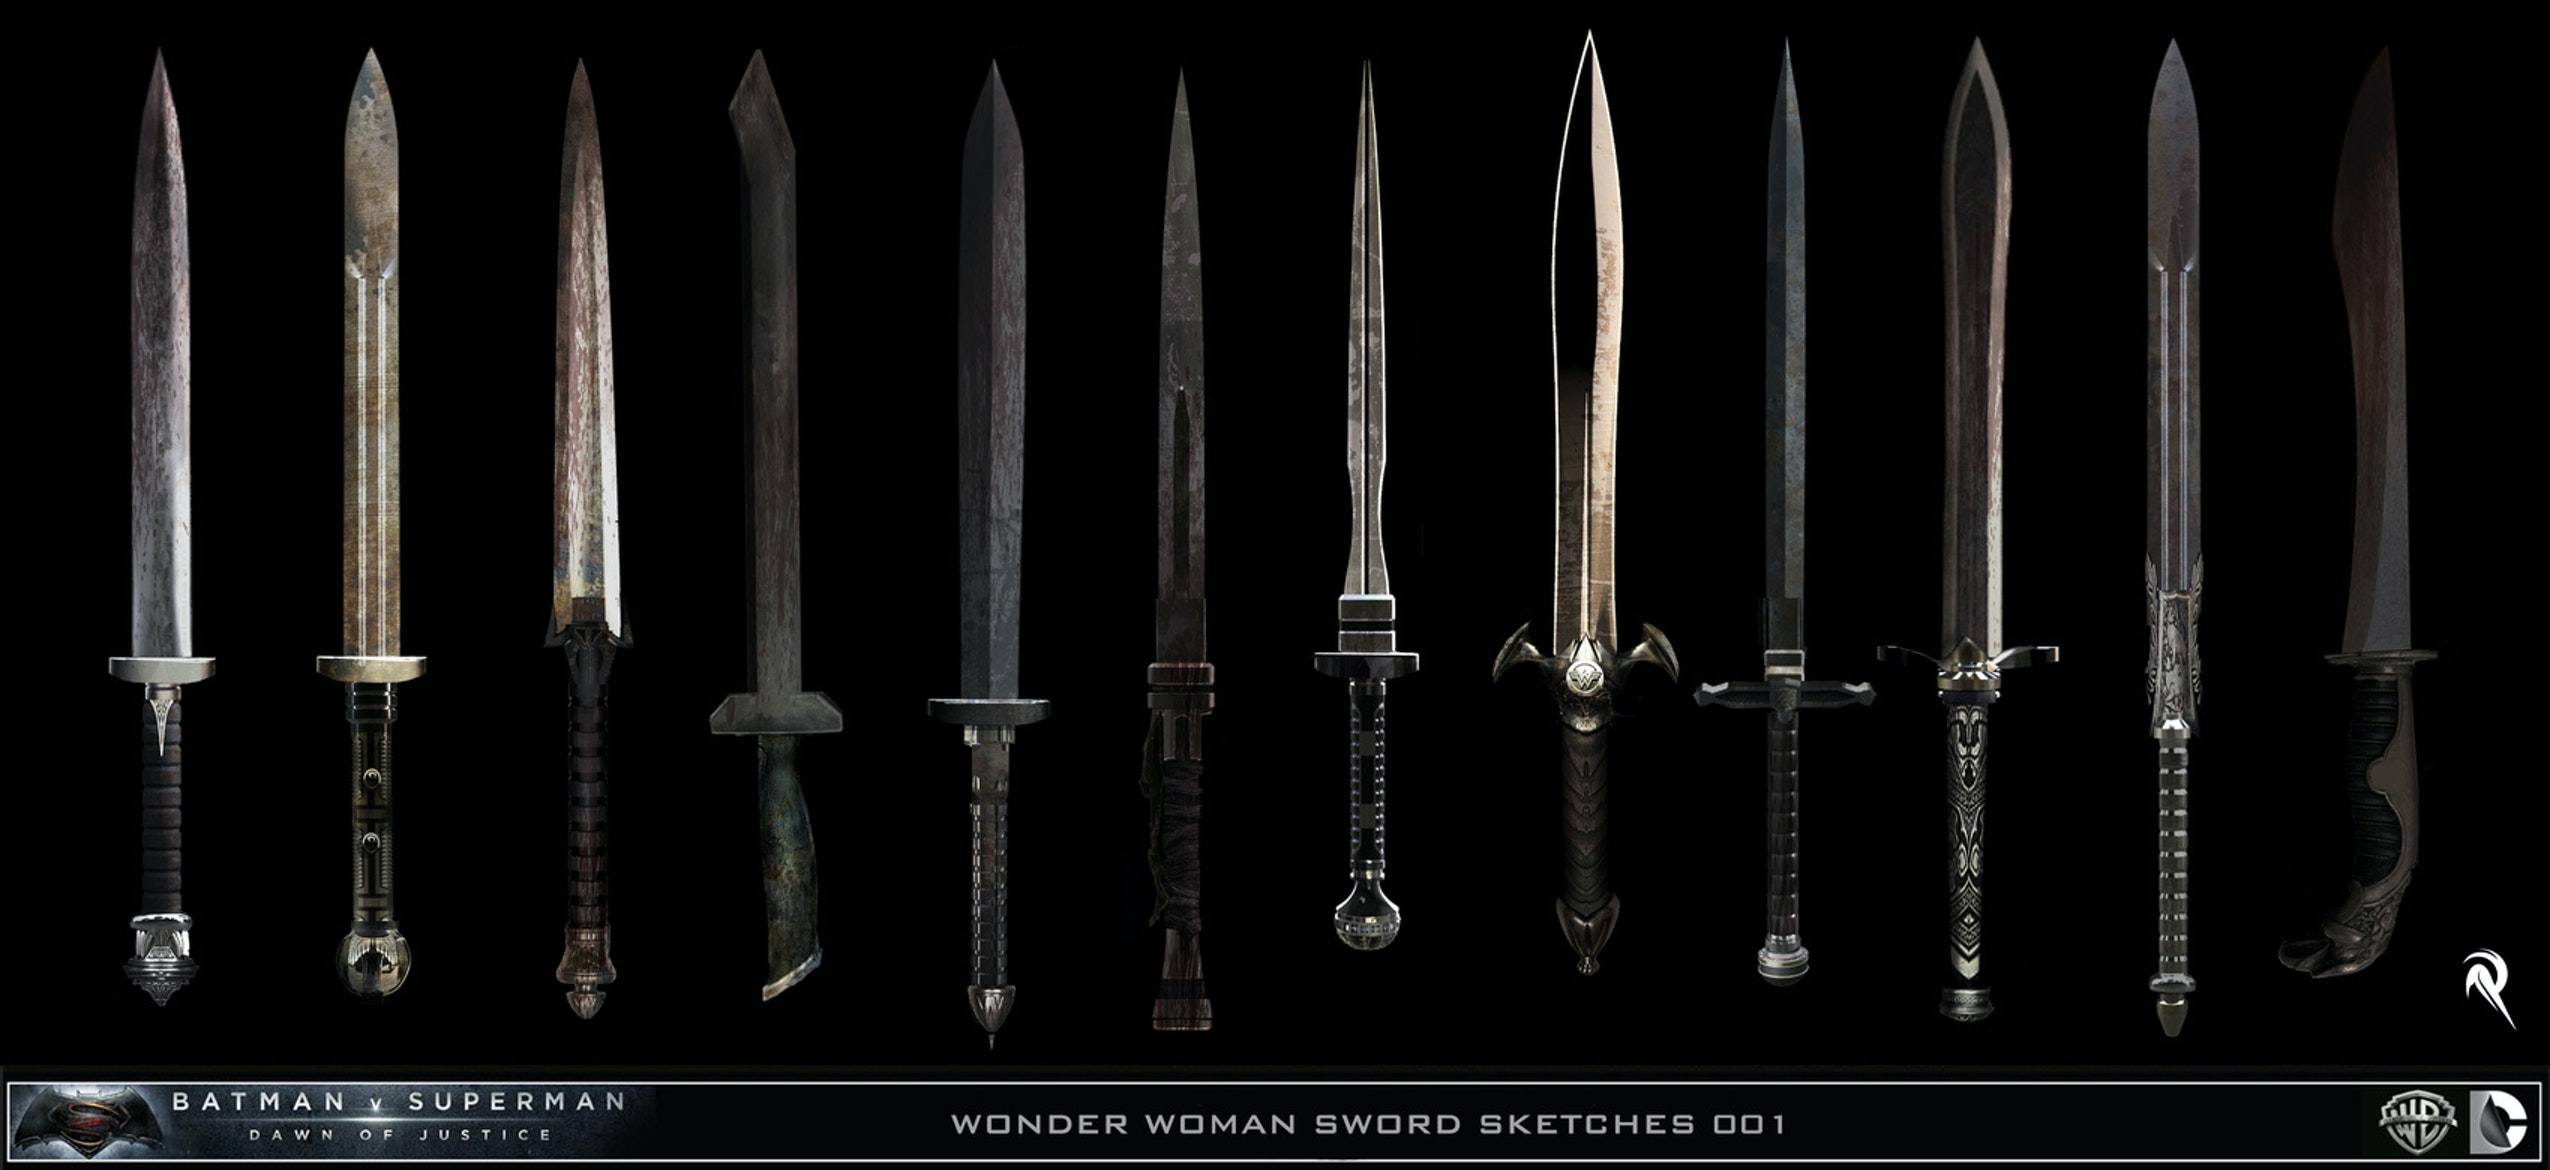 Designs for Wonder Woman's Sword in Batman v Superman